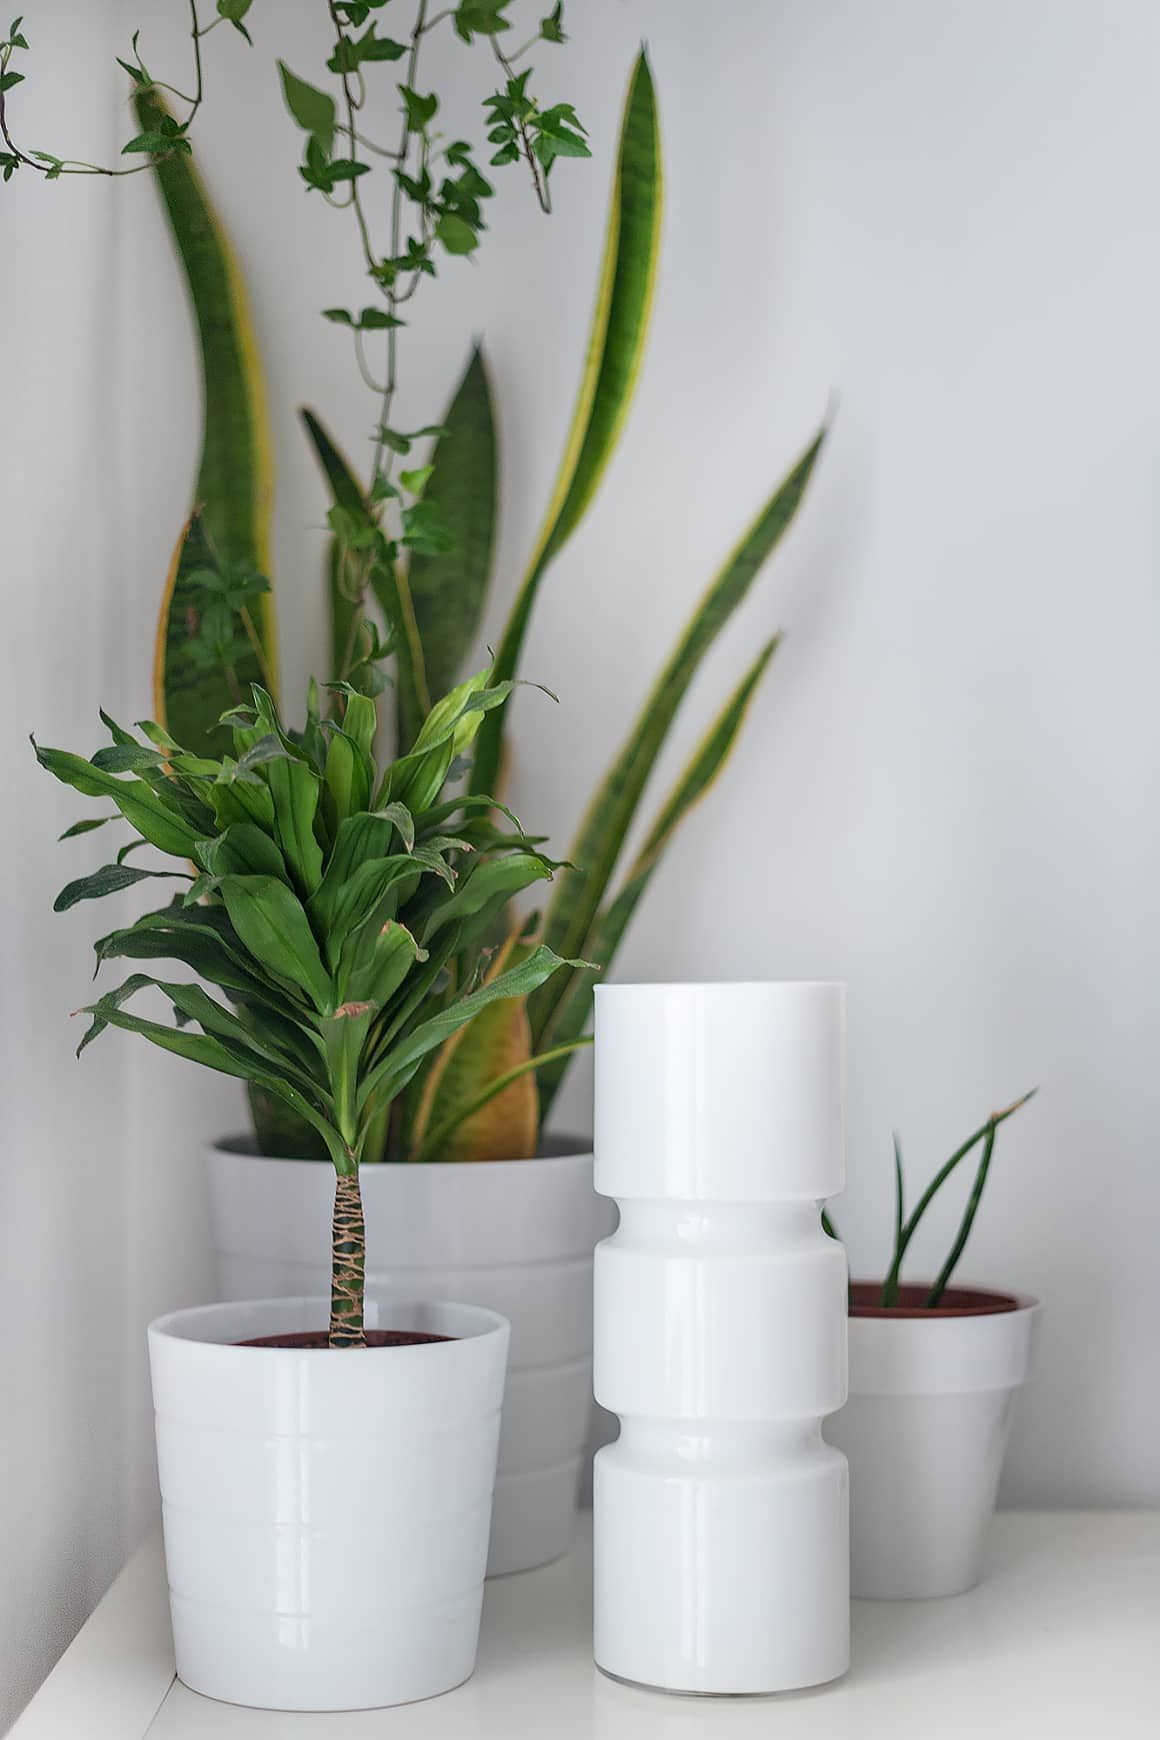 Do you really need a drainage hole in your plant pots